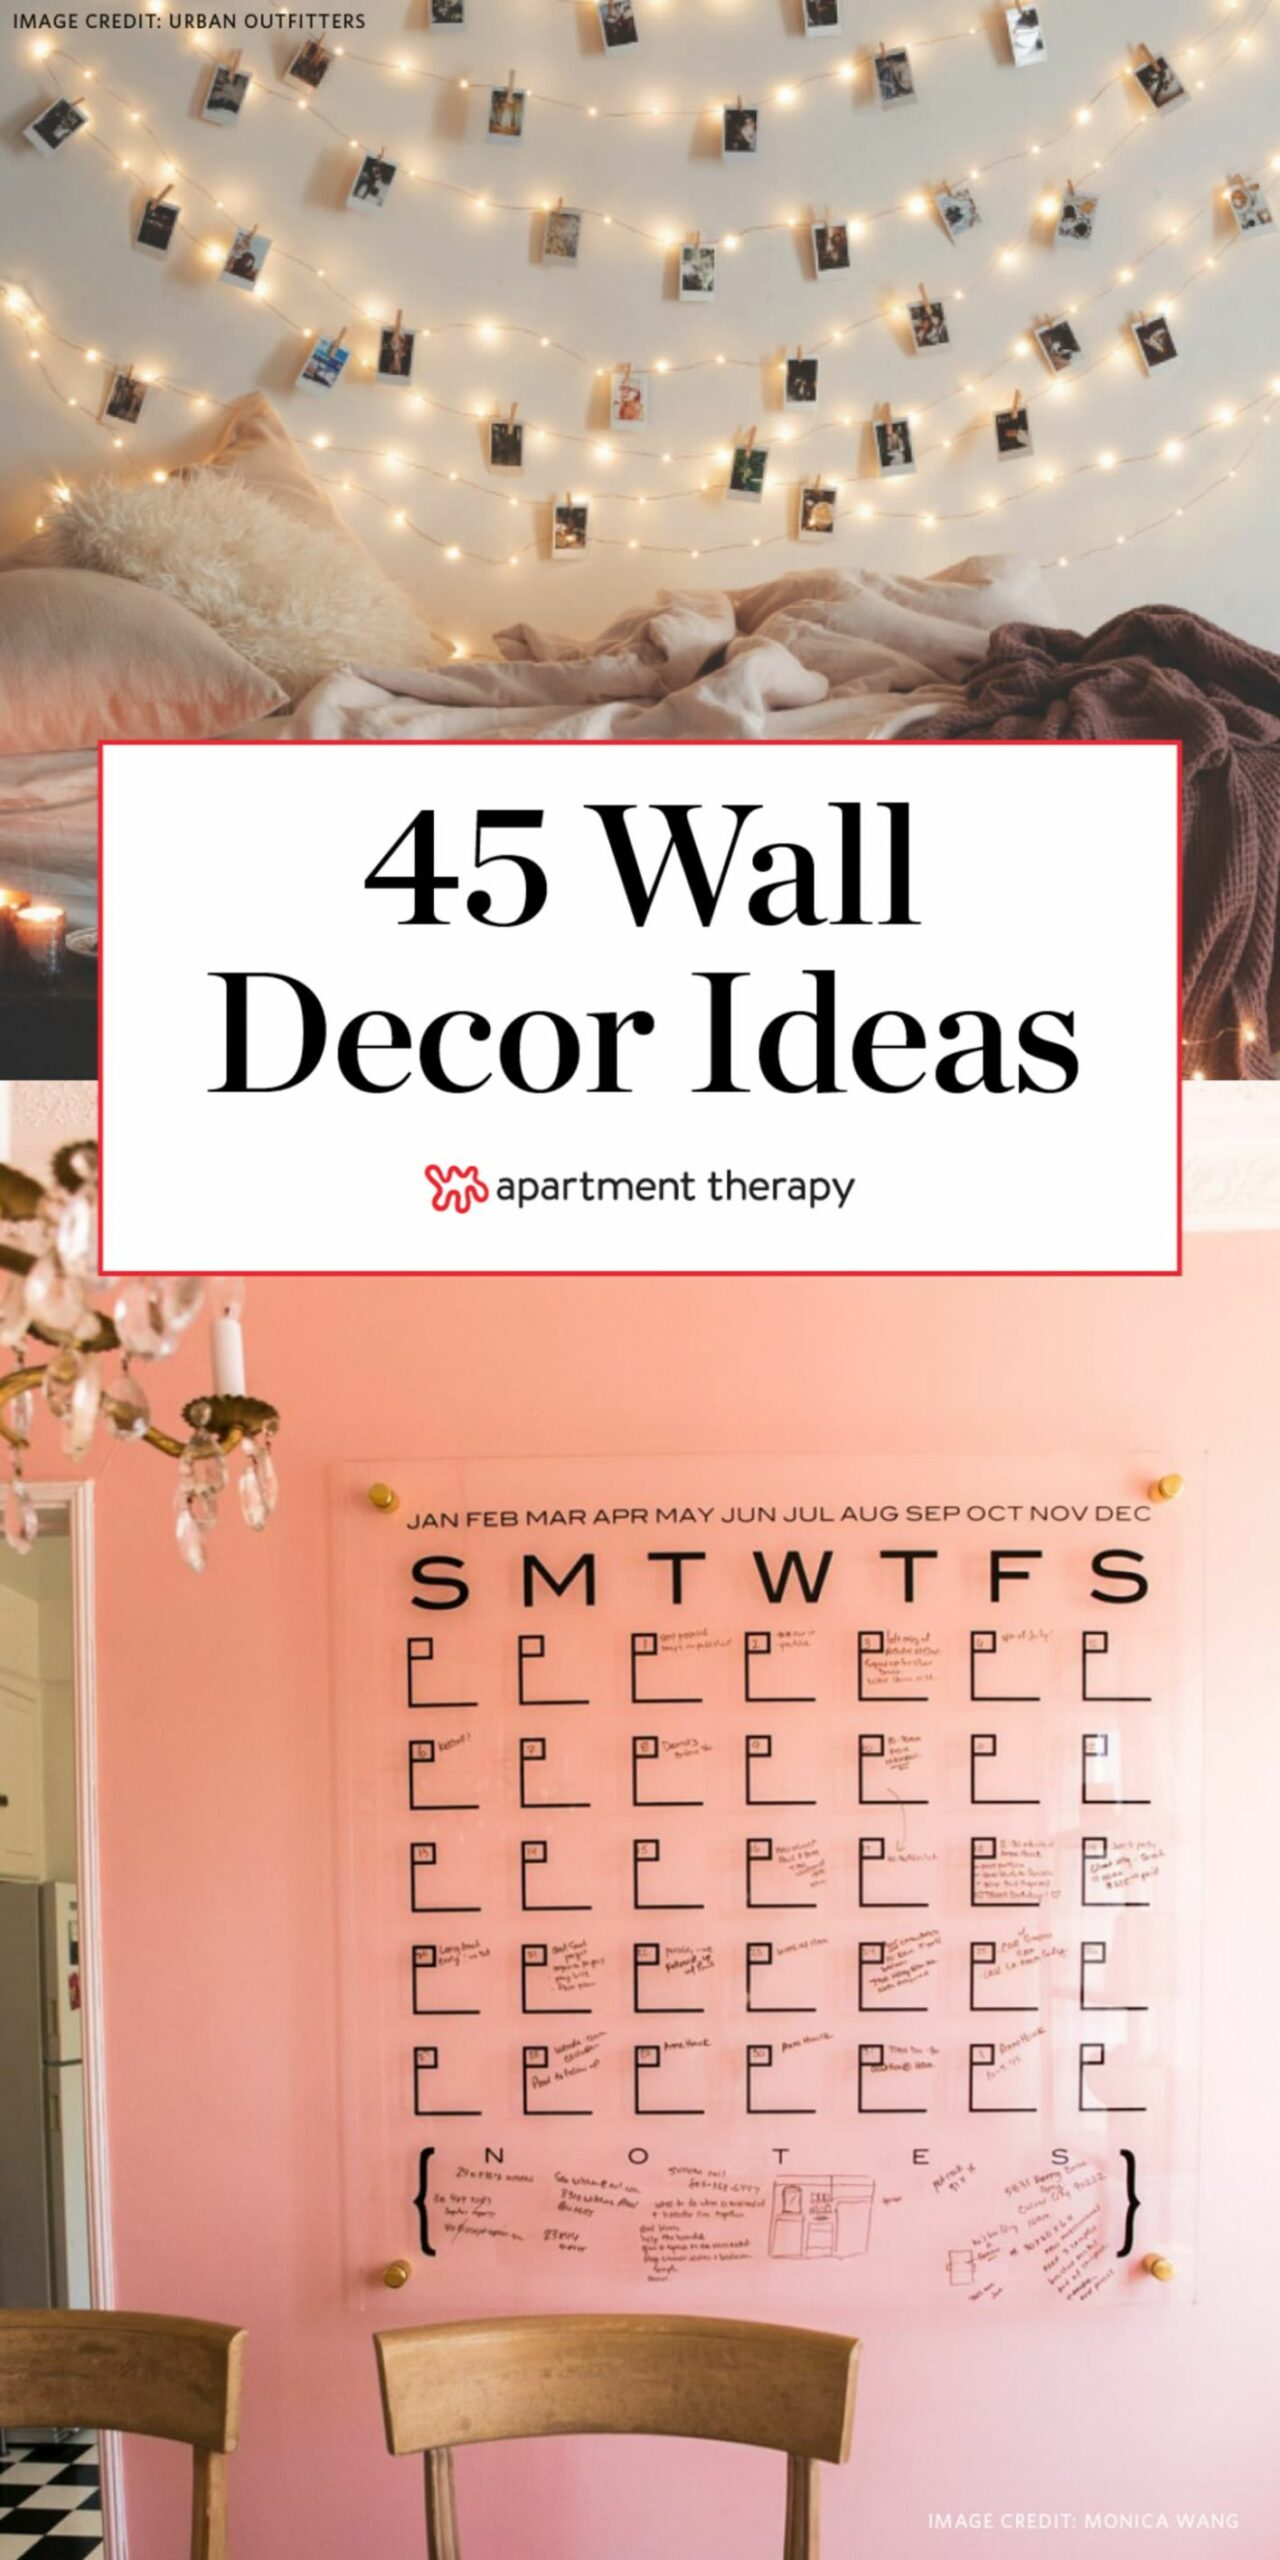 Wall Decor Ideas - 10 Things to Try at Home | Apartment Therapy - apartment decorating wall ideas